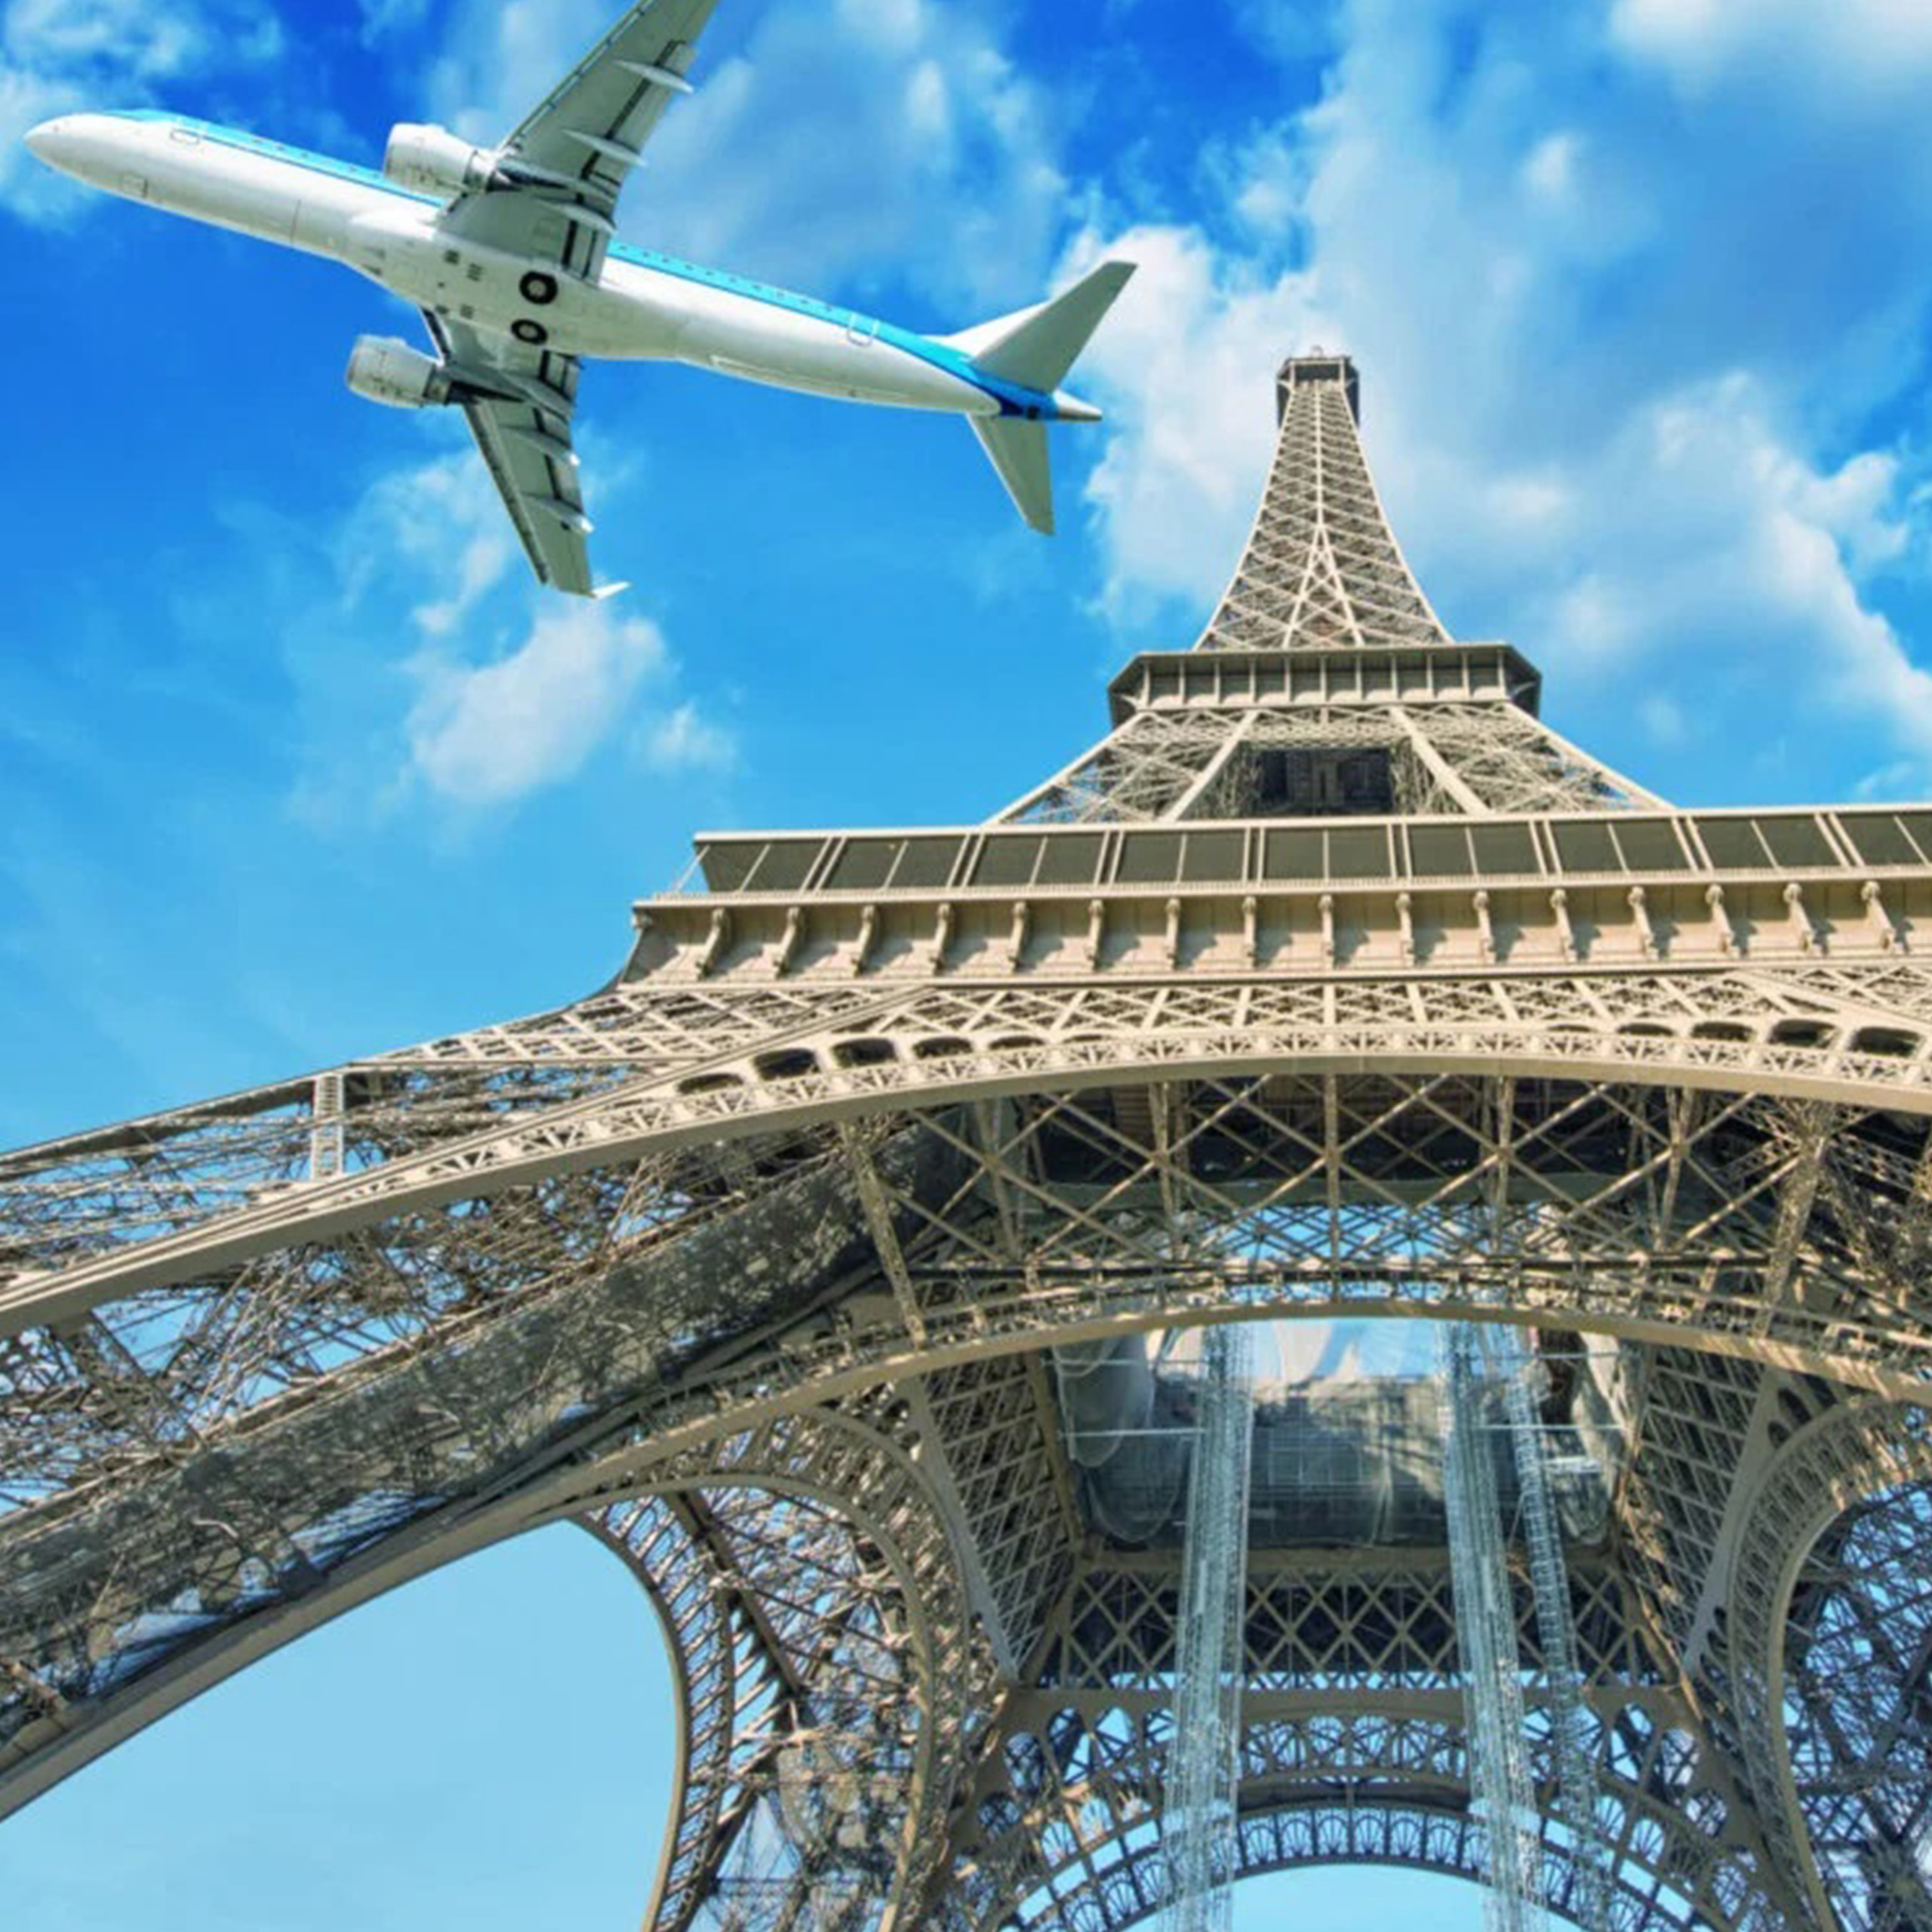 Hypermotion Dubai Industry News - Paris airports could be transformed into hydrogen hubs